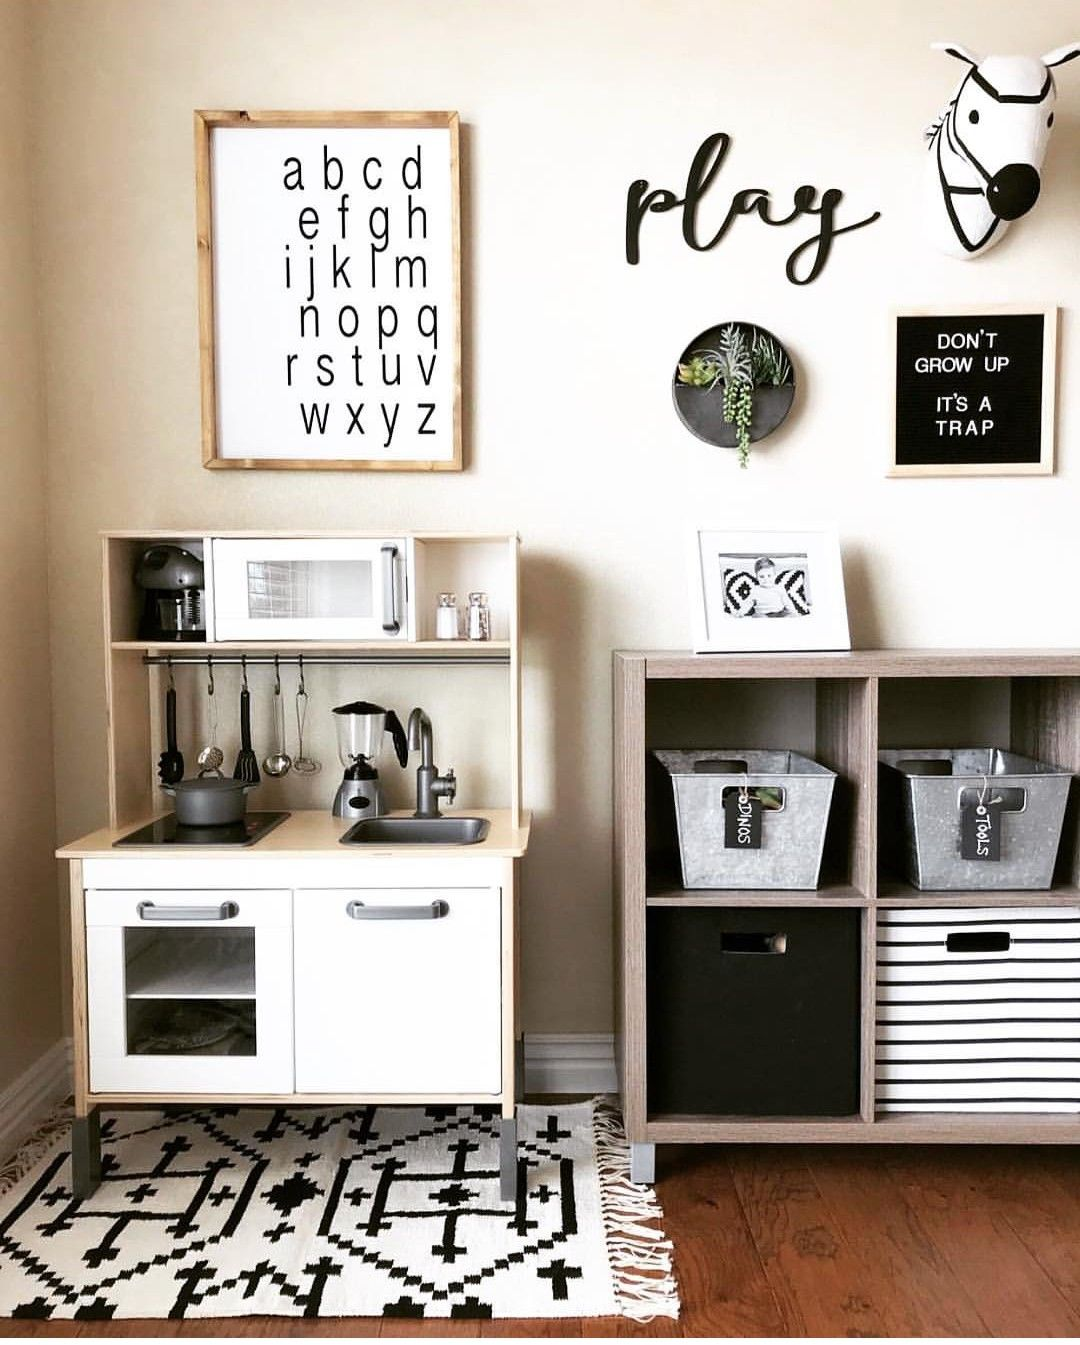 Pin By Faith Link On Playroom For The Kiddos | Playroom, Toy Rooms